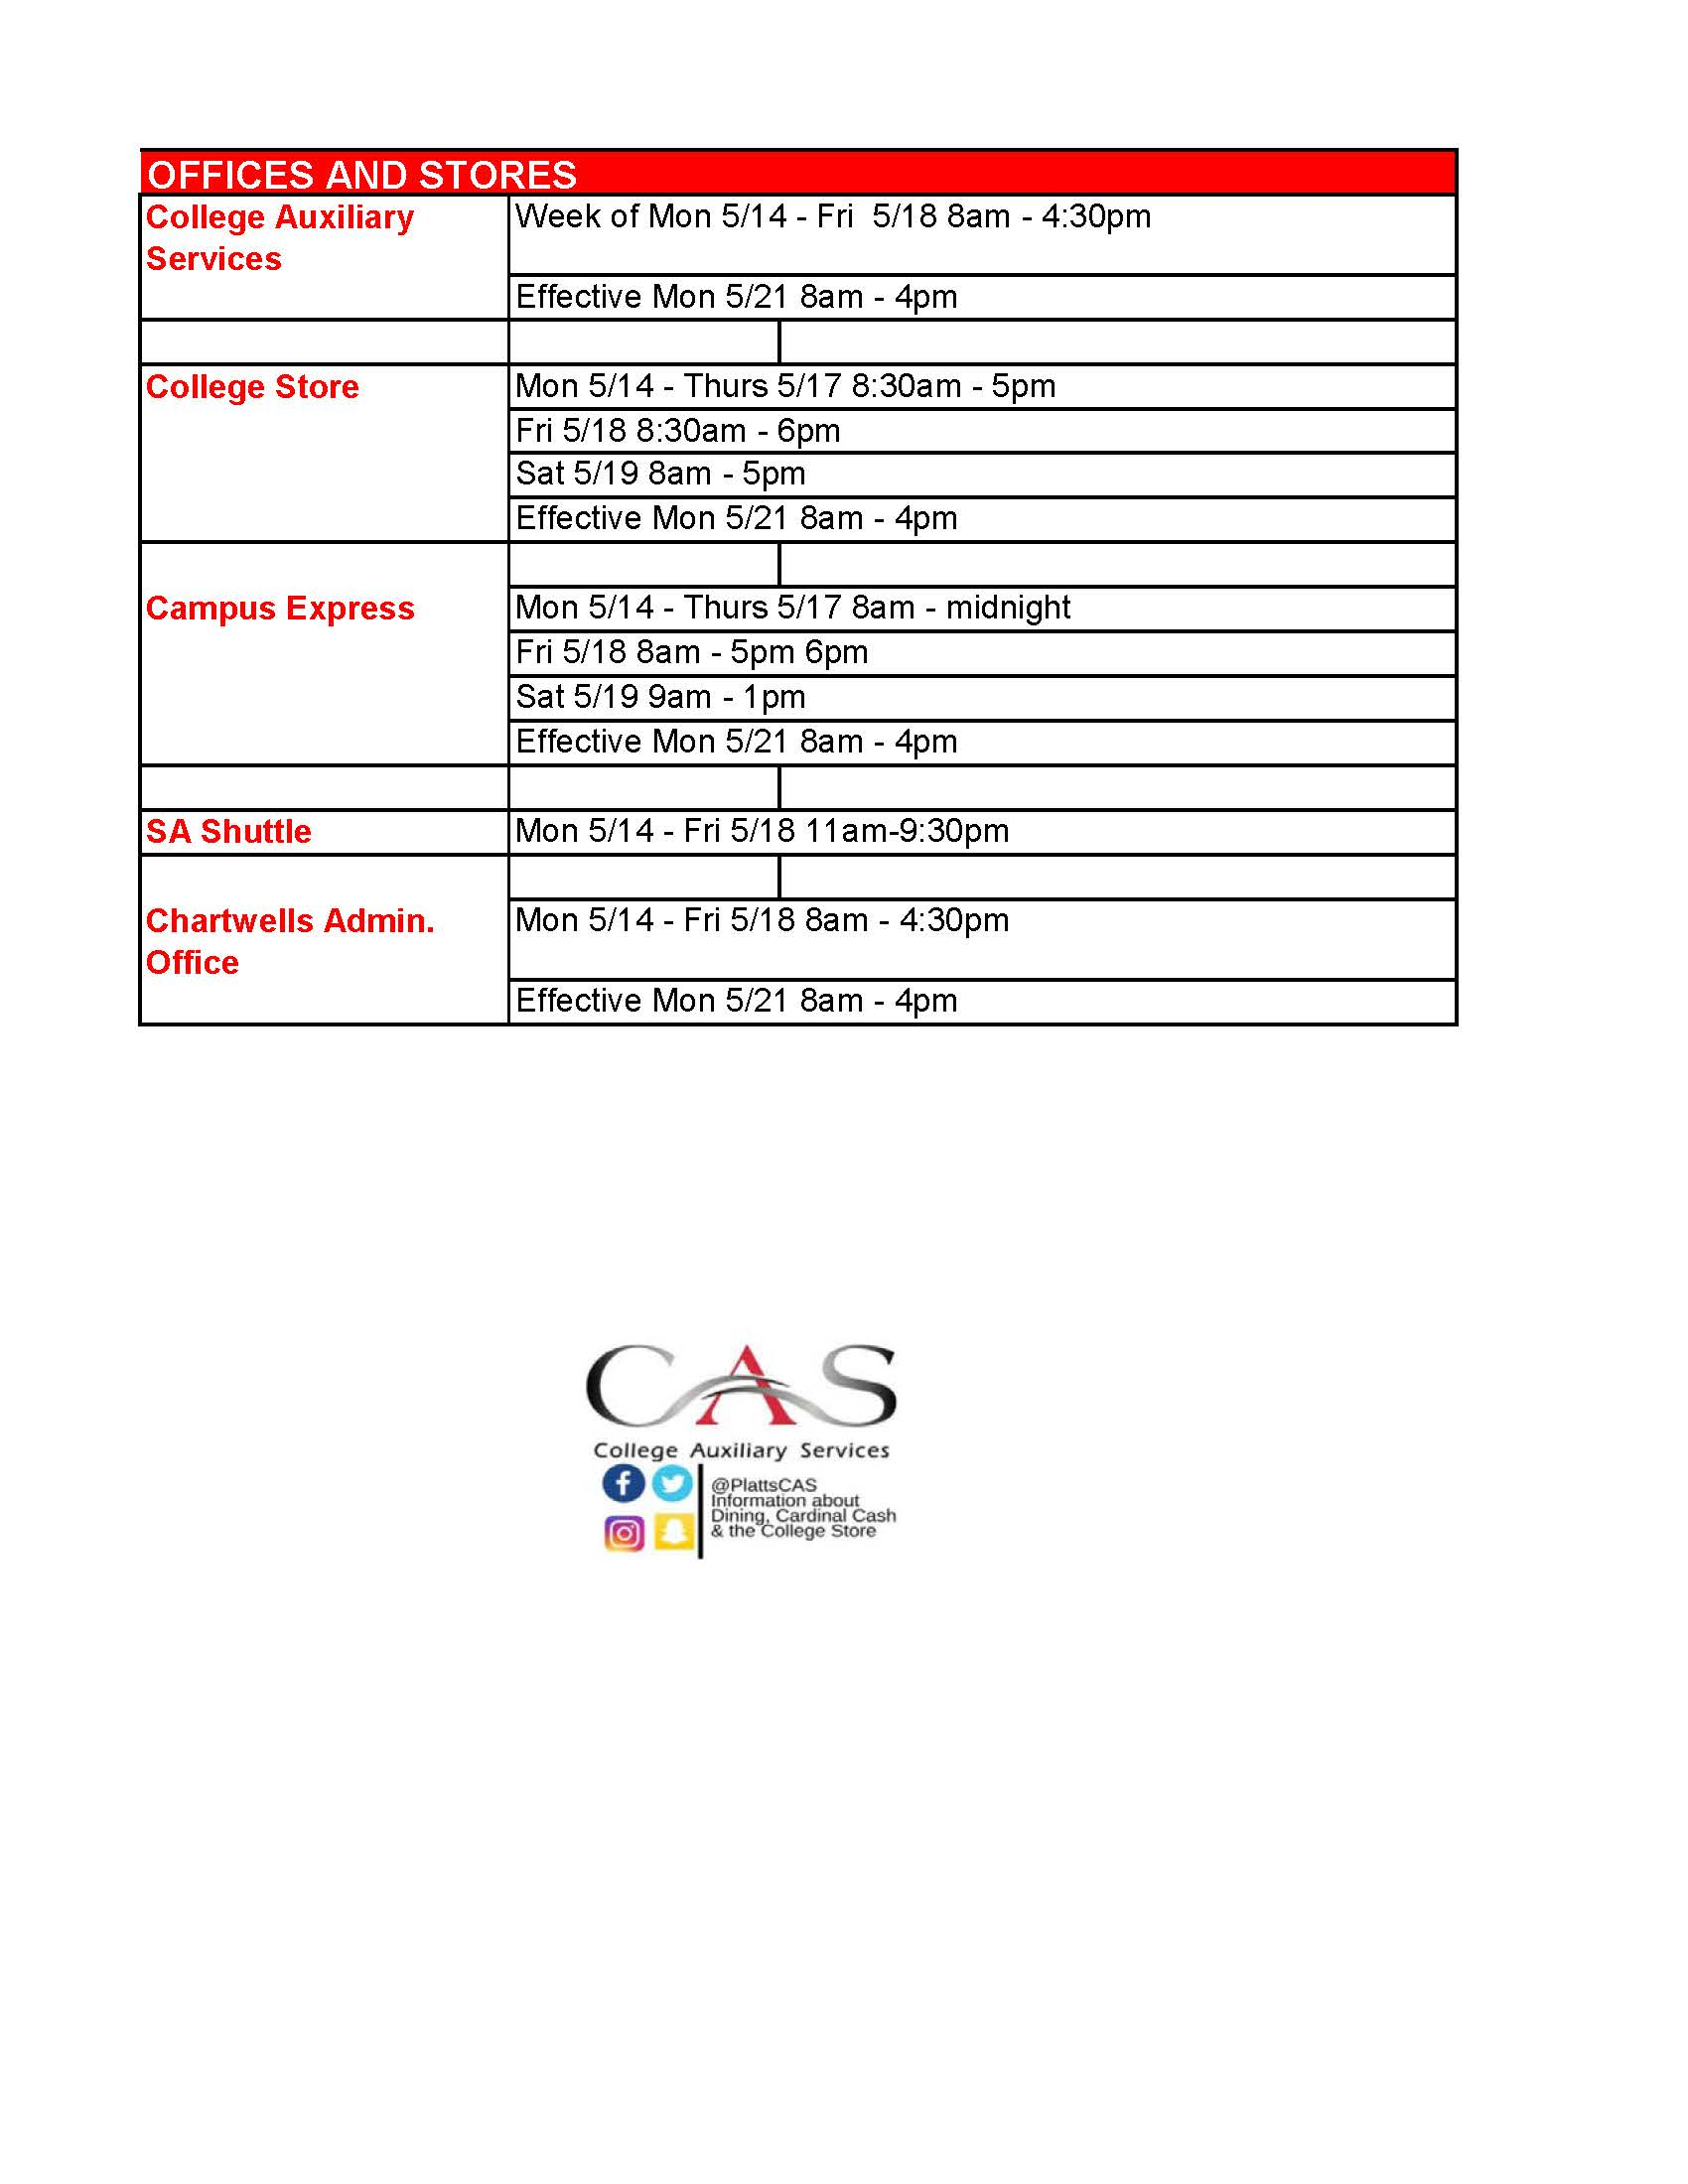 Stores and CAS Office Finals and Summer Hours